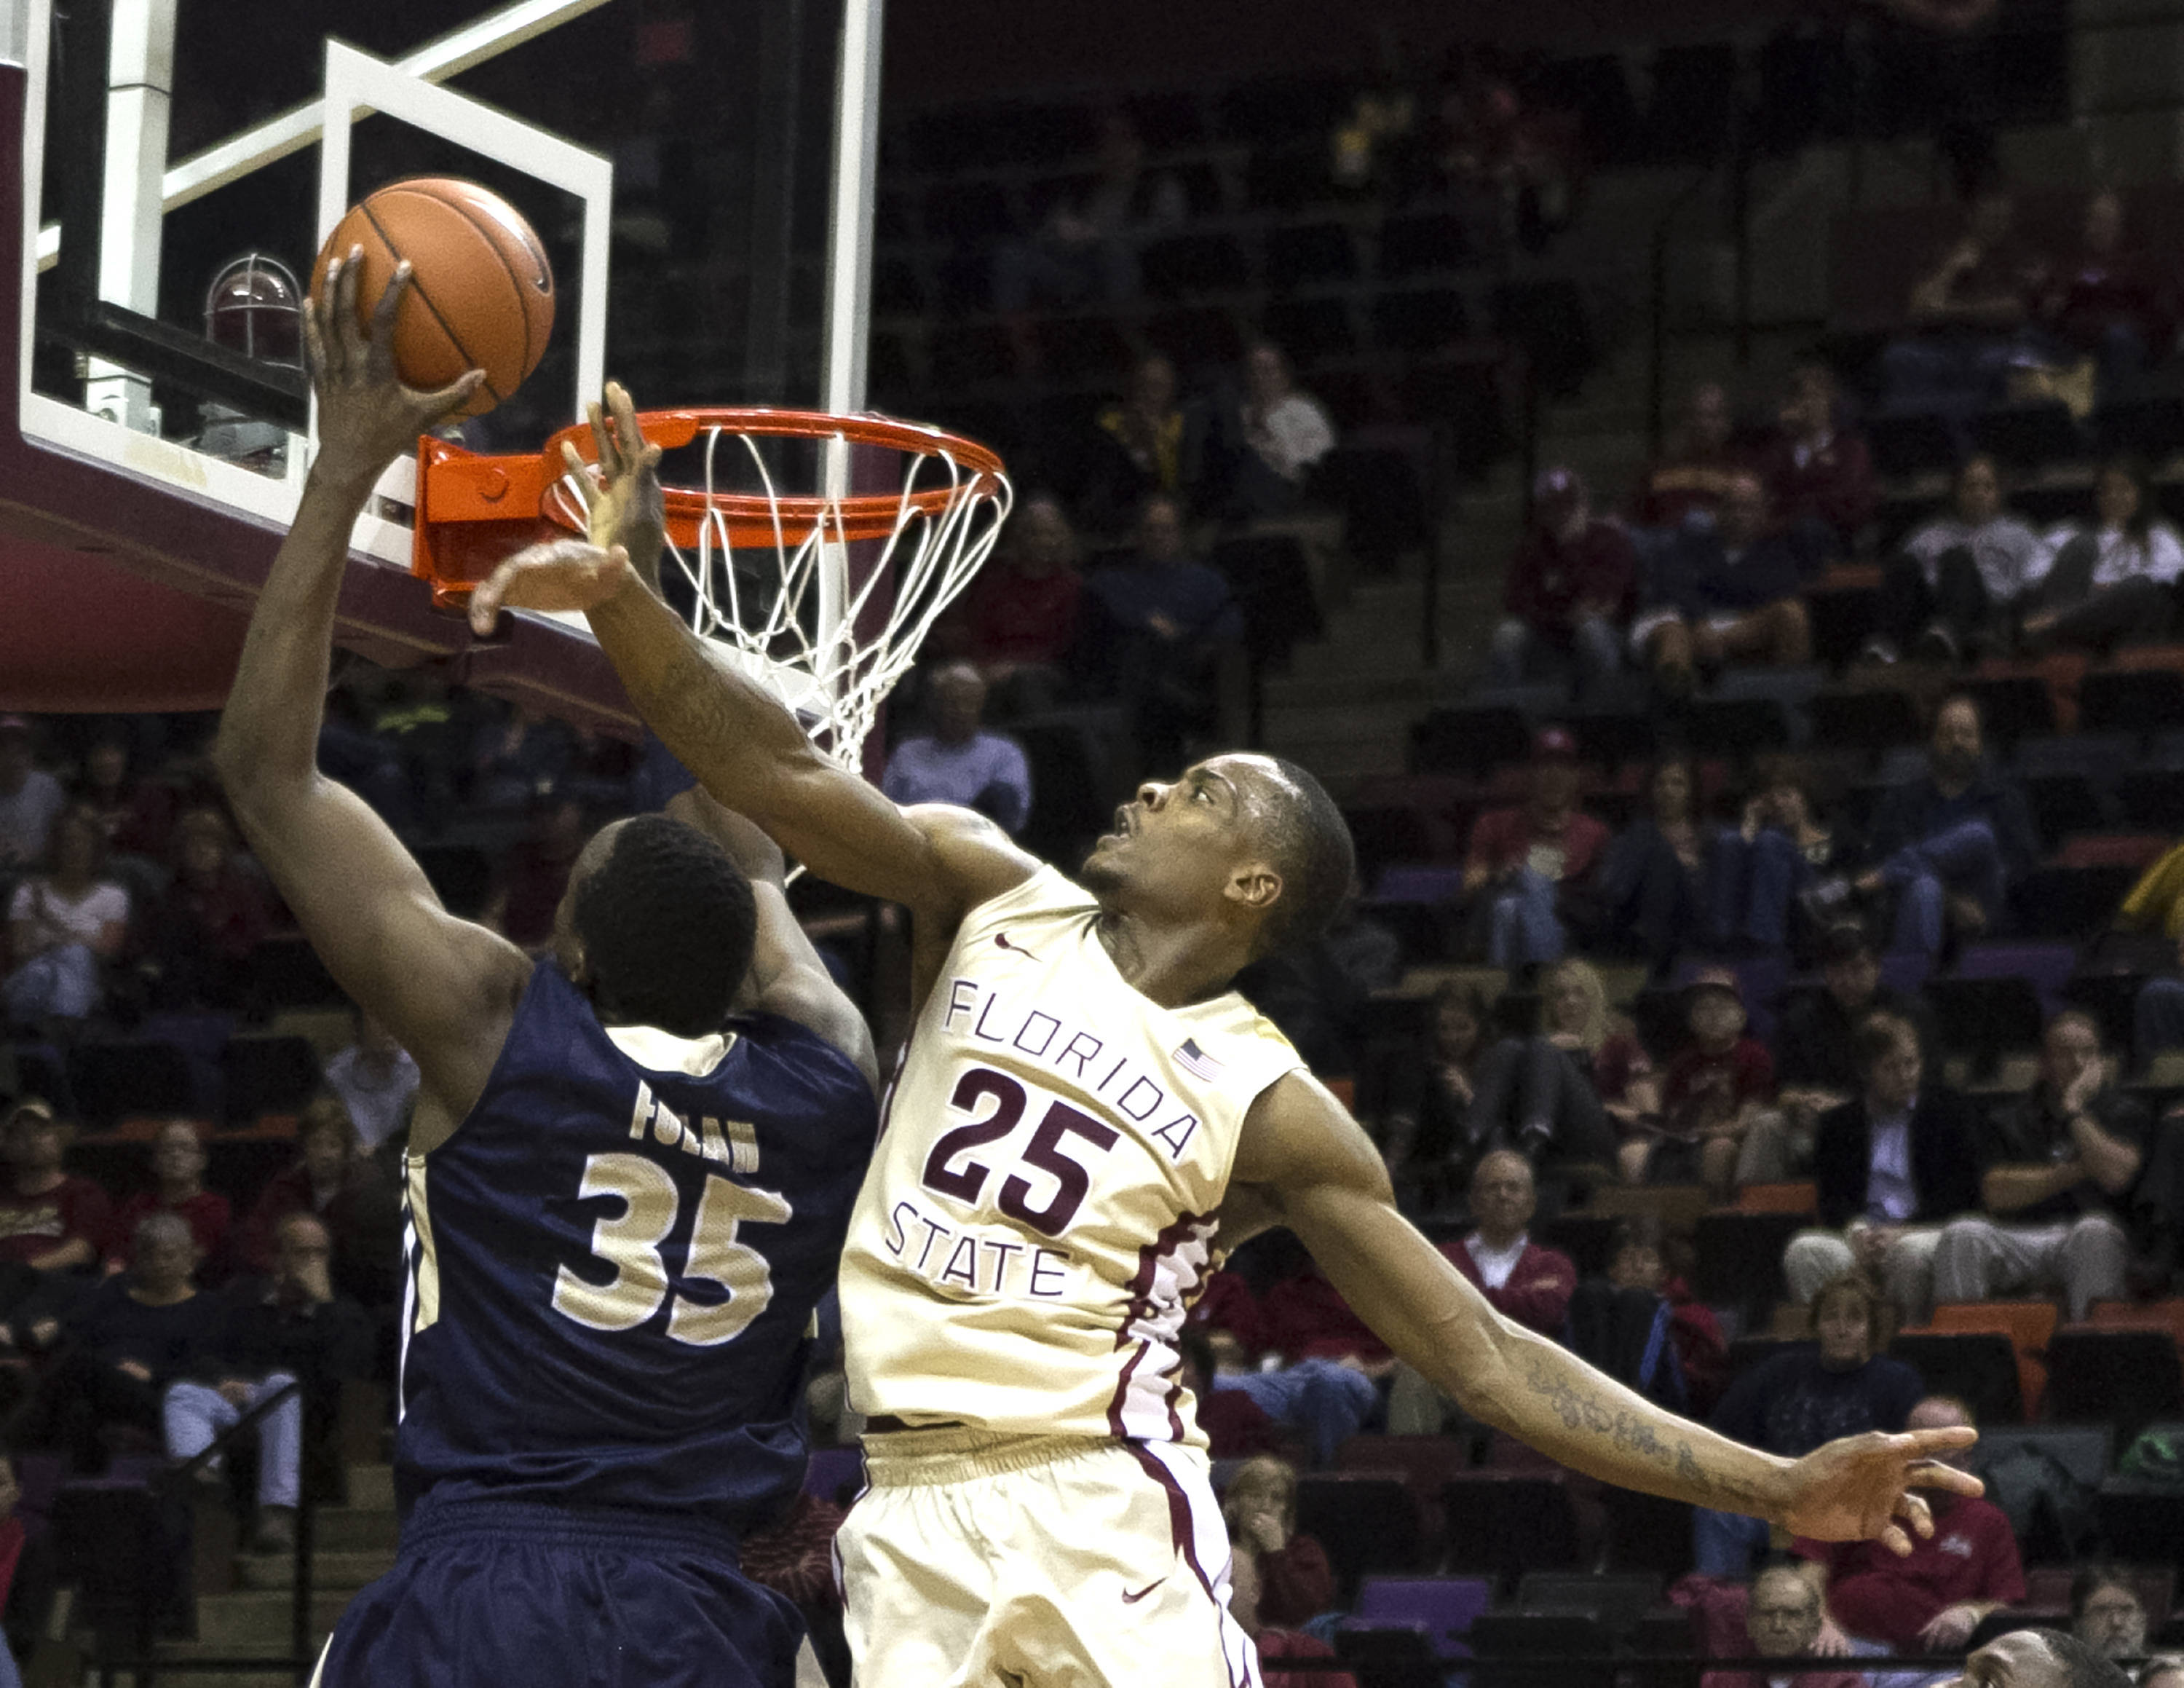 Aaron Thomas (25) challenging a shot, FSU vs Charleston Southern, 12-30-13,  (Photo by Steve Musco)